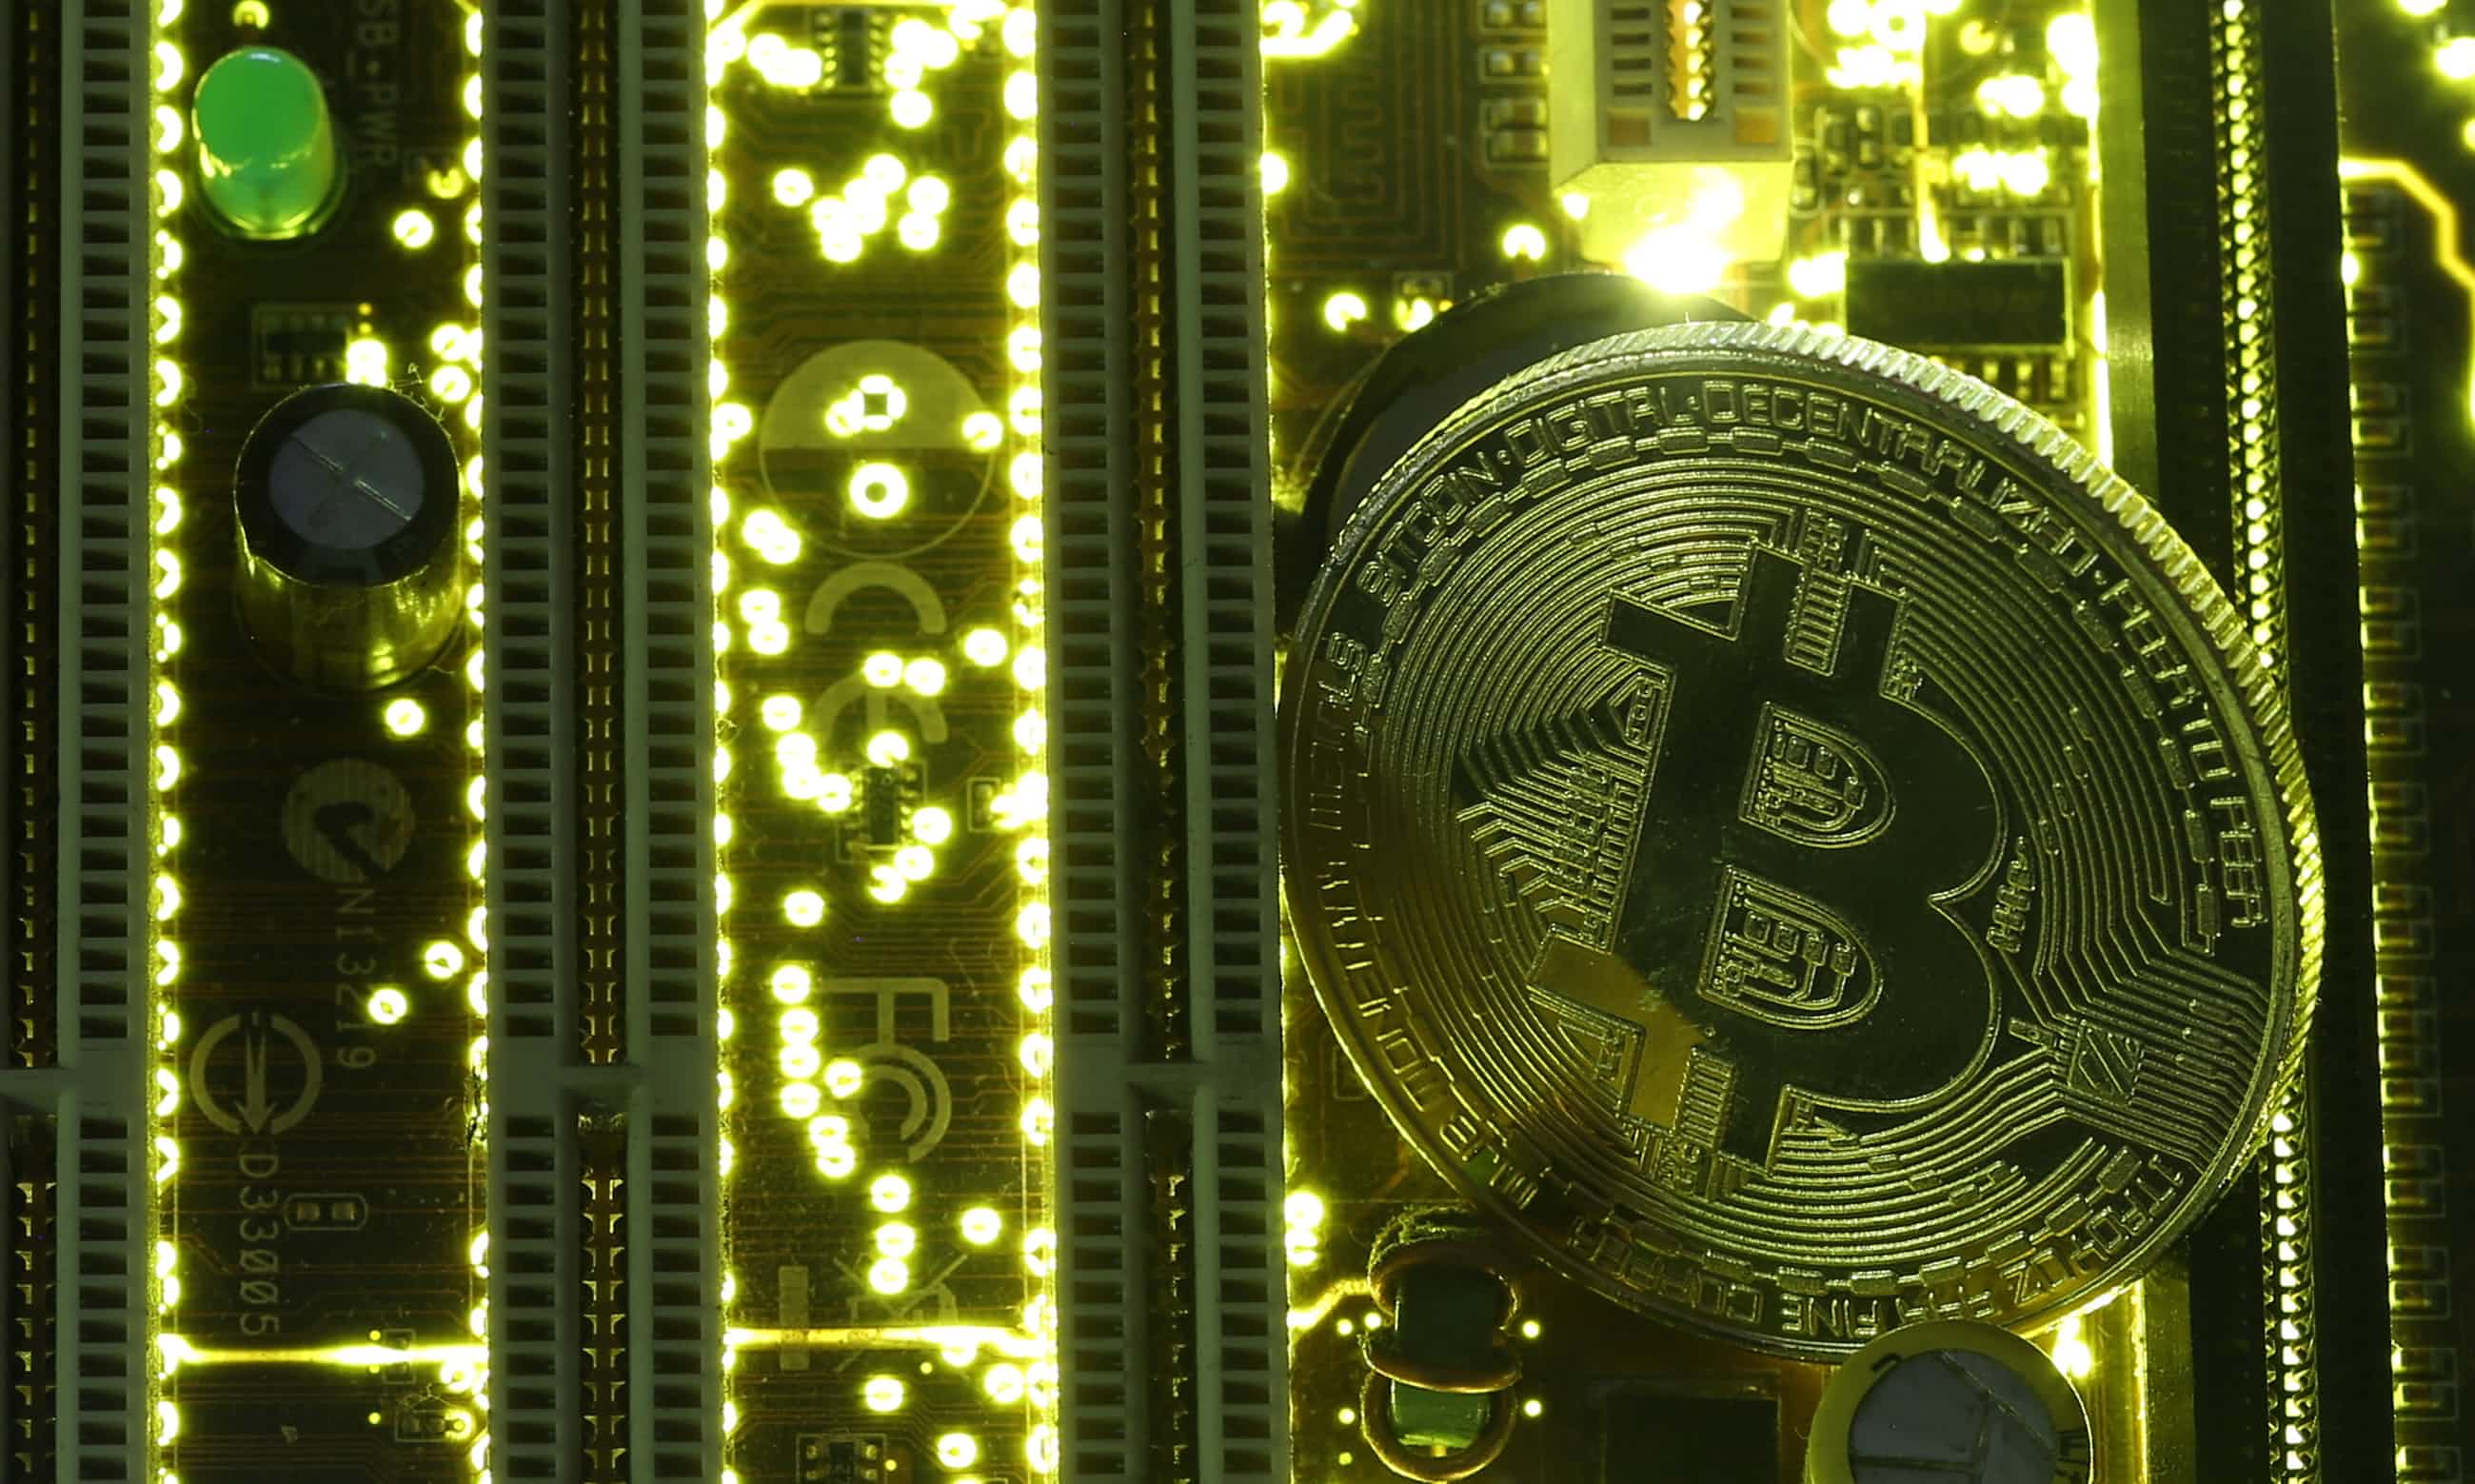 Everything You Wanted To Know About Bitcoin But Were Afraid To Ask Via @Guardian @alexhern